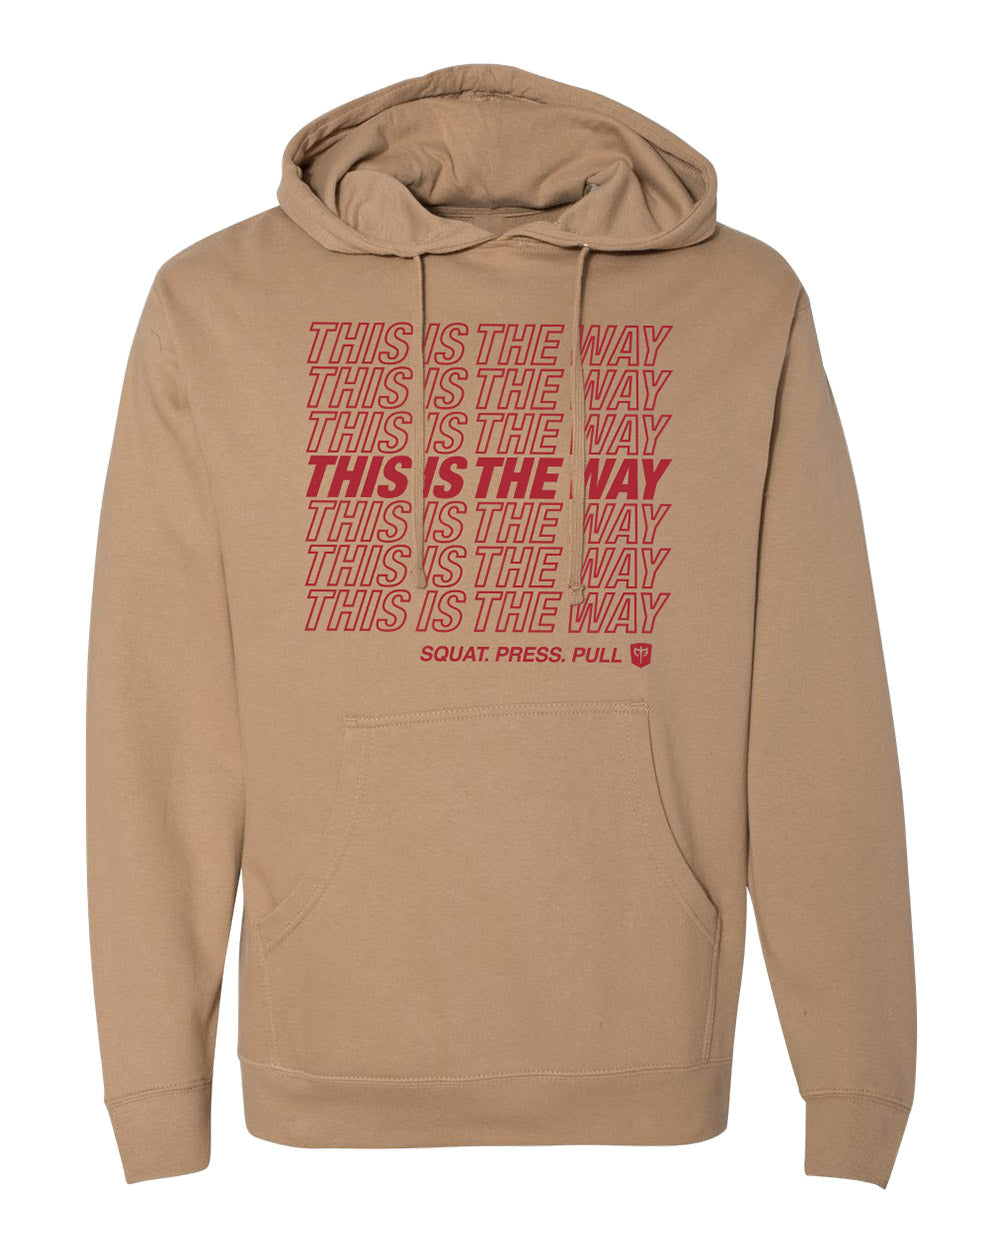 THIS IS THE WAY - on Sand Pullover Hoodie